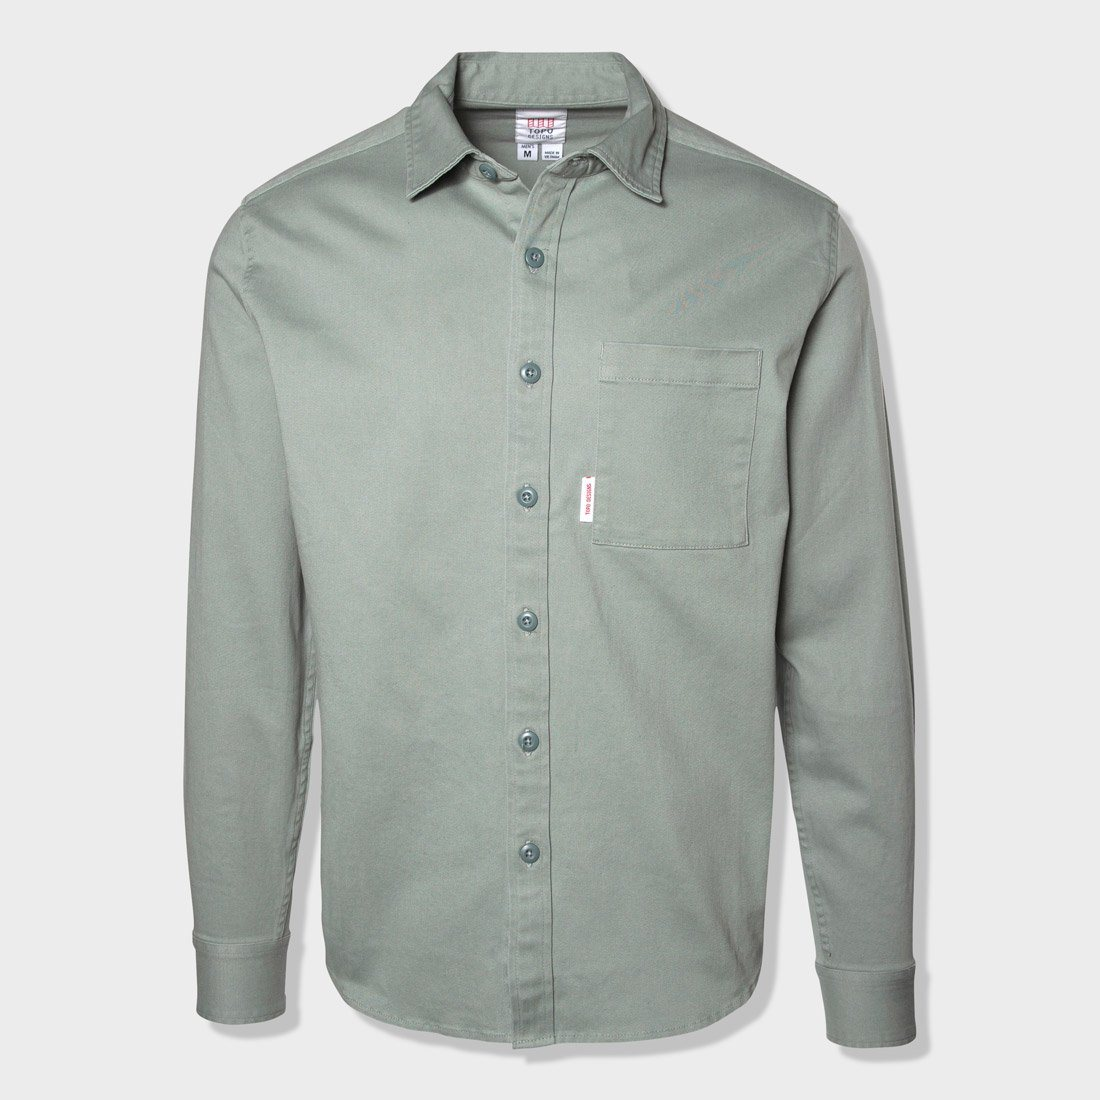 Topo Designs Dirt Shirt Stone